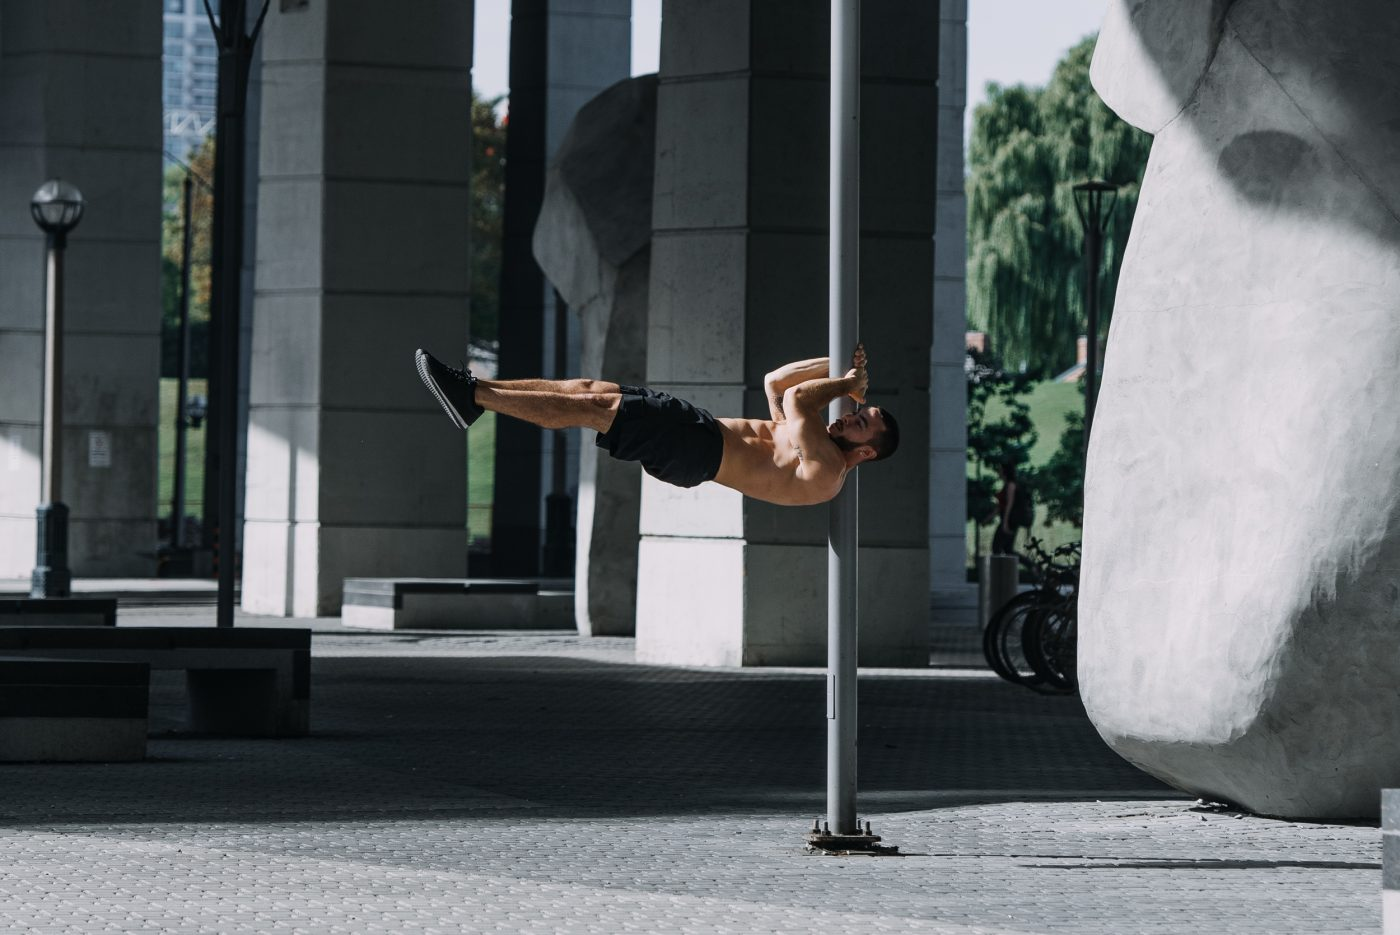 Progressing to a Human Flag and Other Calisthenics Moves